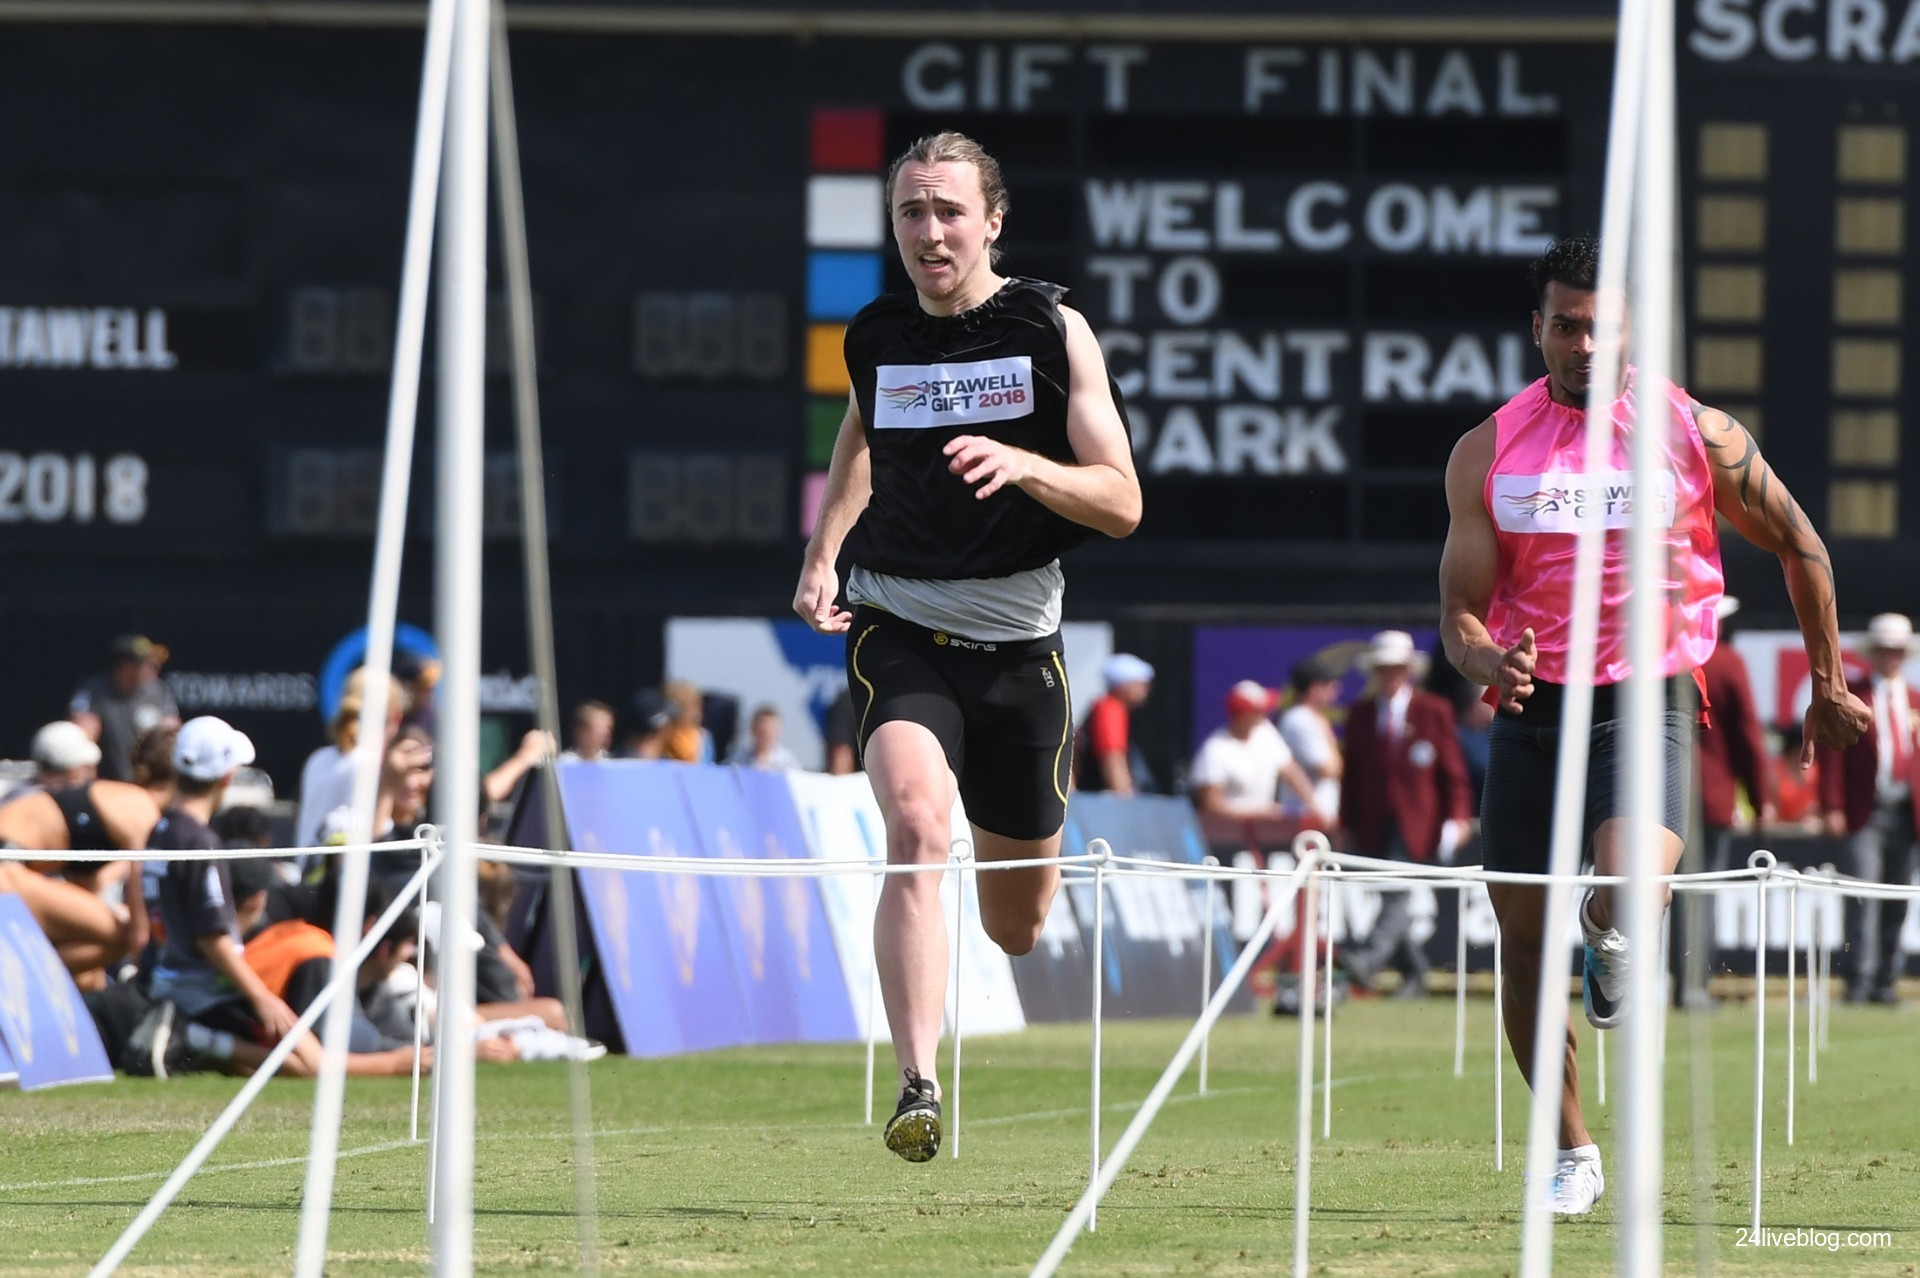 Re live the magic follow the 2018 stawell gift as it happened keast won the ararat gift ealier this season but reaching the stawell gift final is by far the biggest moment in his athletic career to date negle Choice Image